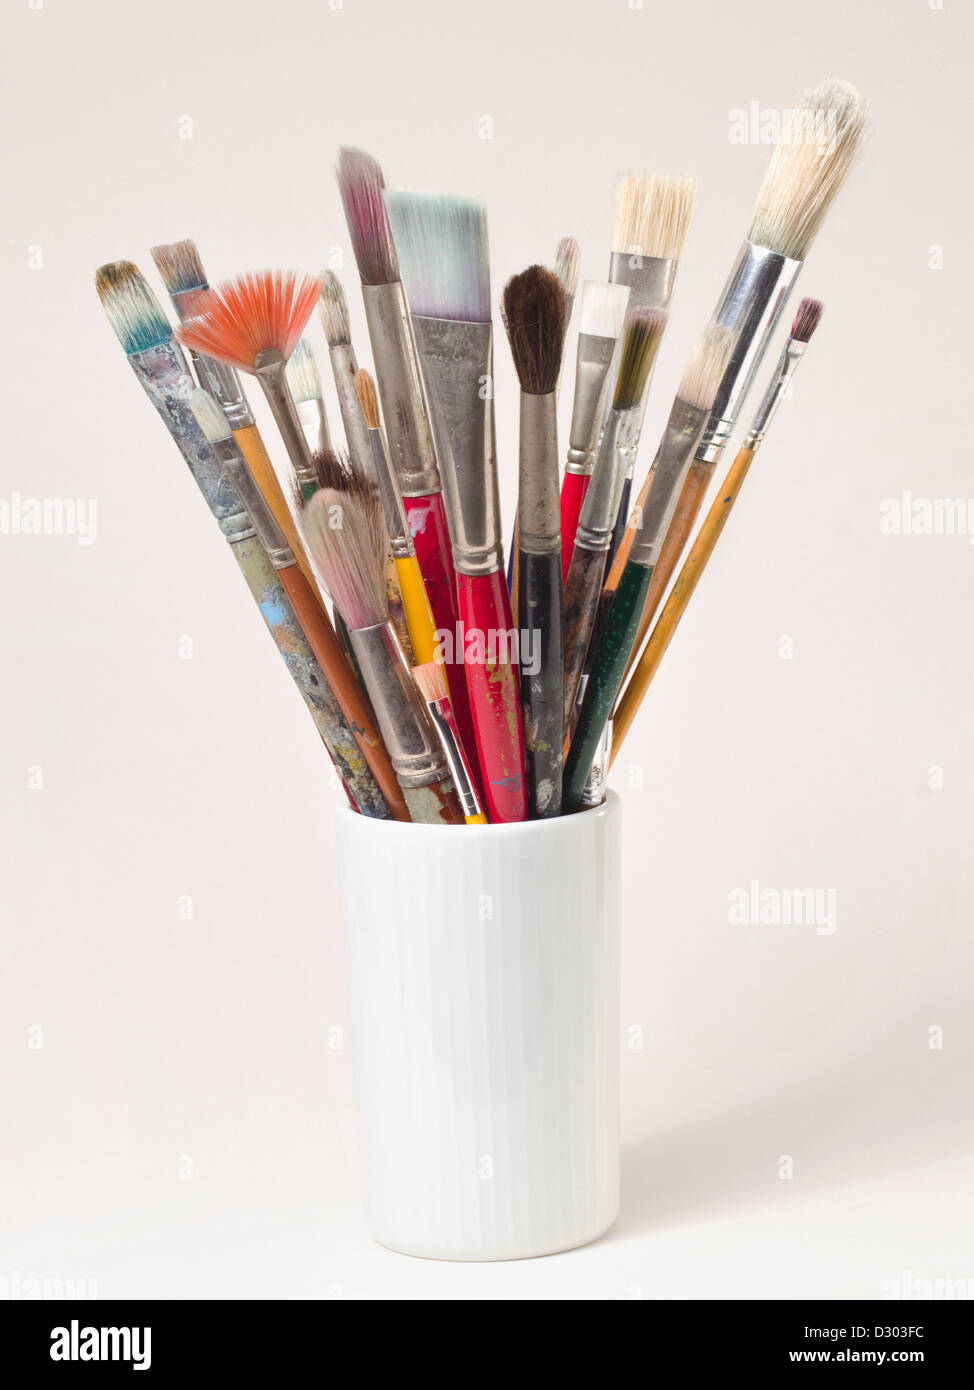 canister of multiple fine art brushes - Stock Image